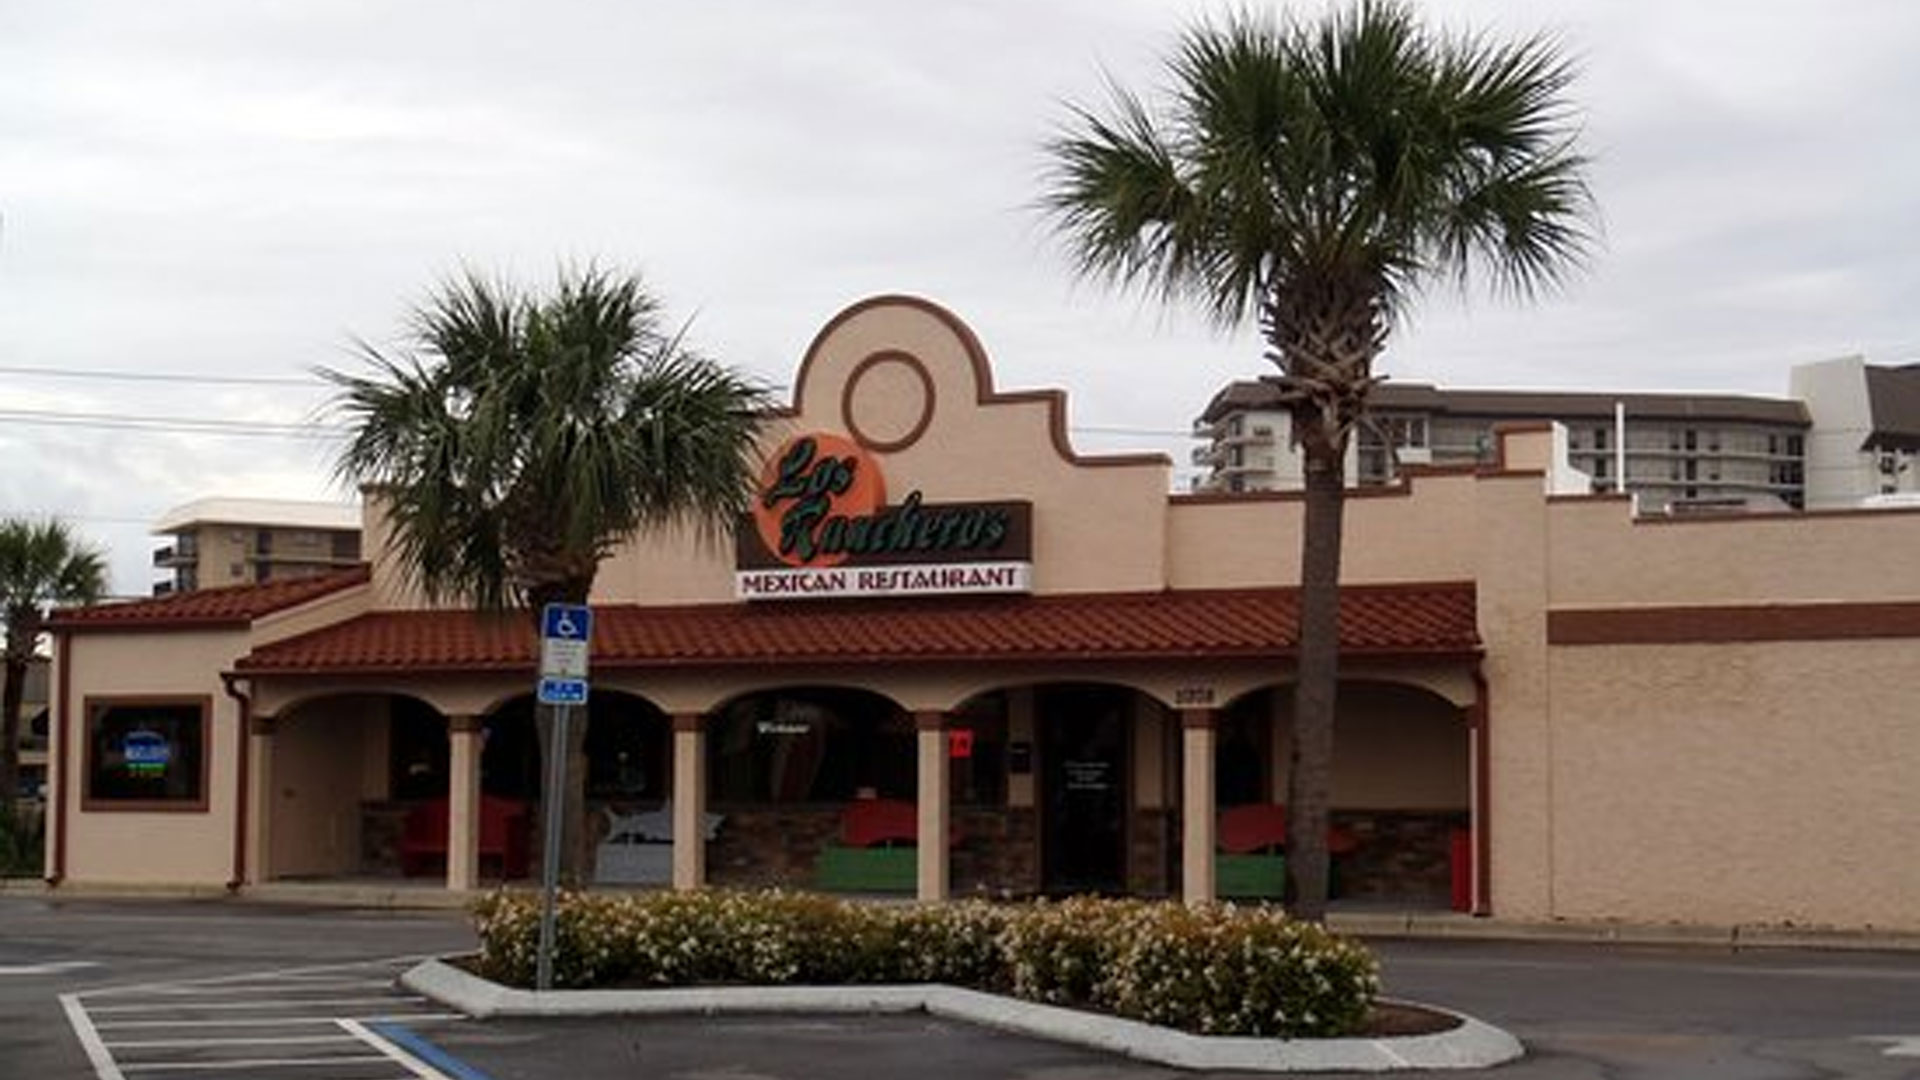 Mexican food for lunch and dinner in Panama City Beach, Florida